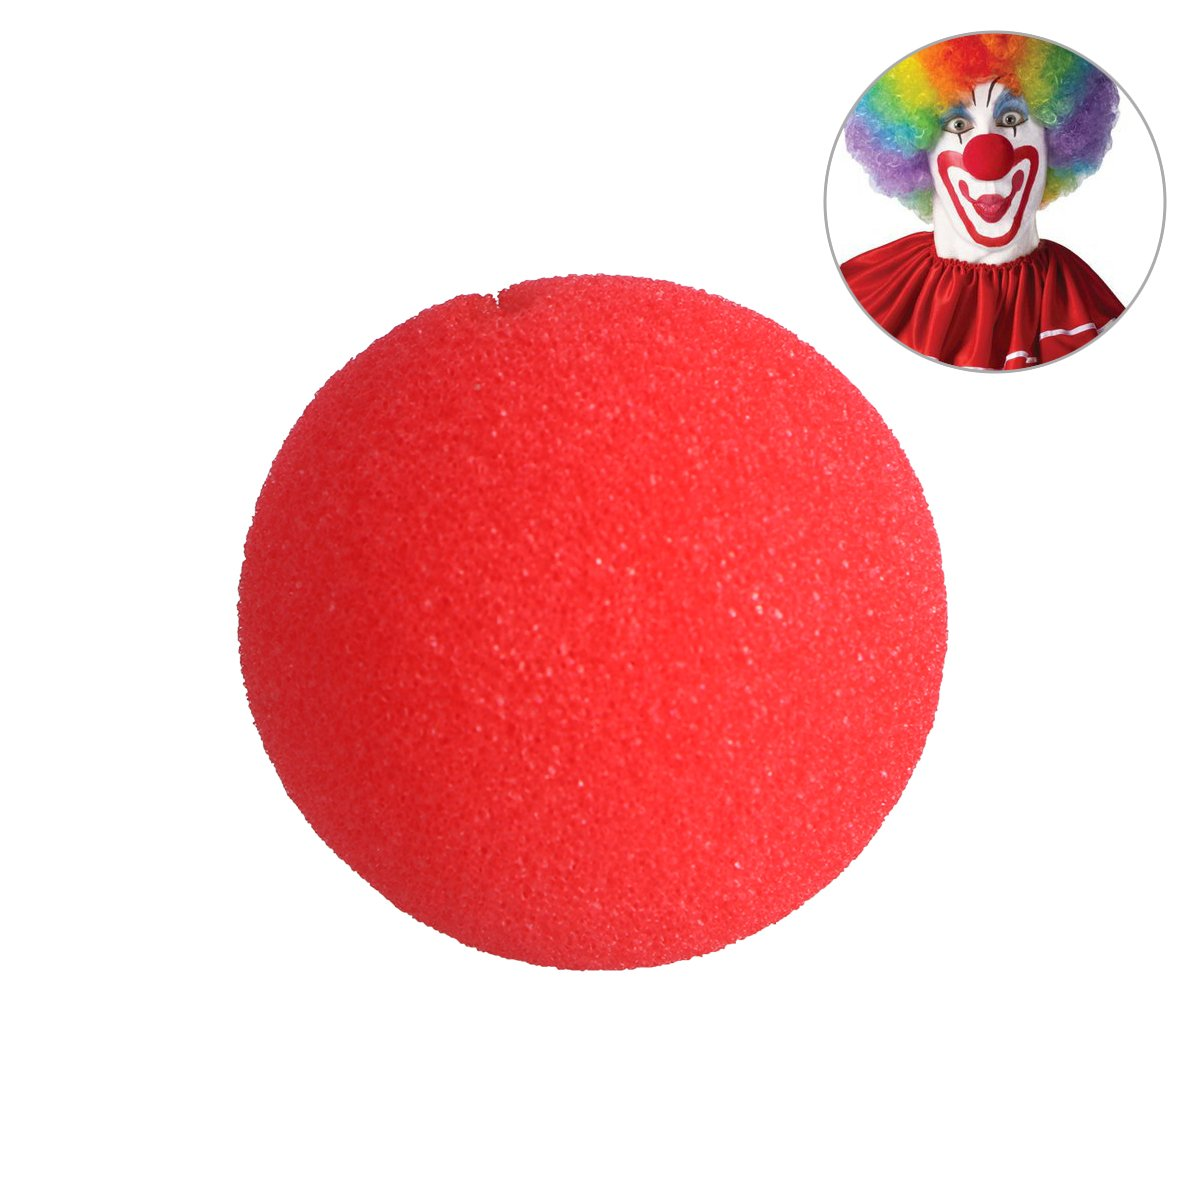 Tinksky Foam Clown Nose One Size Red Nose Clown for Halloween Masquerade Cospaly Halloween Costumes Red